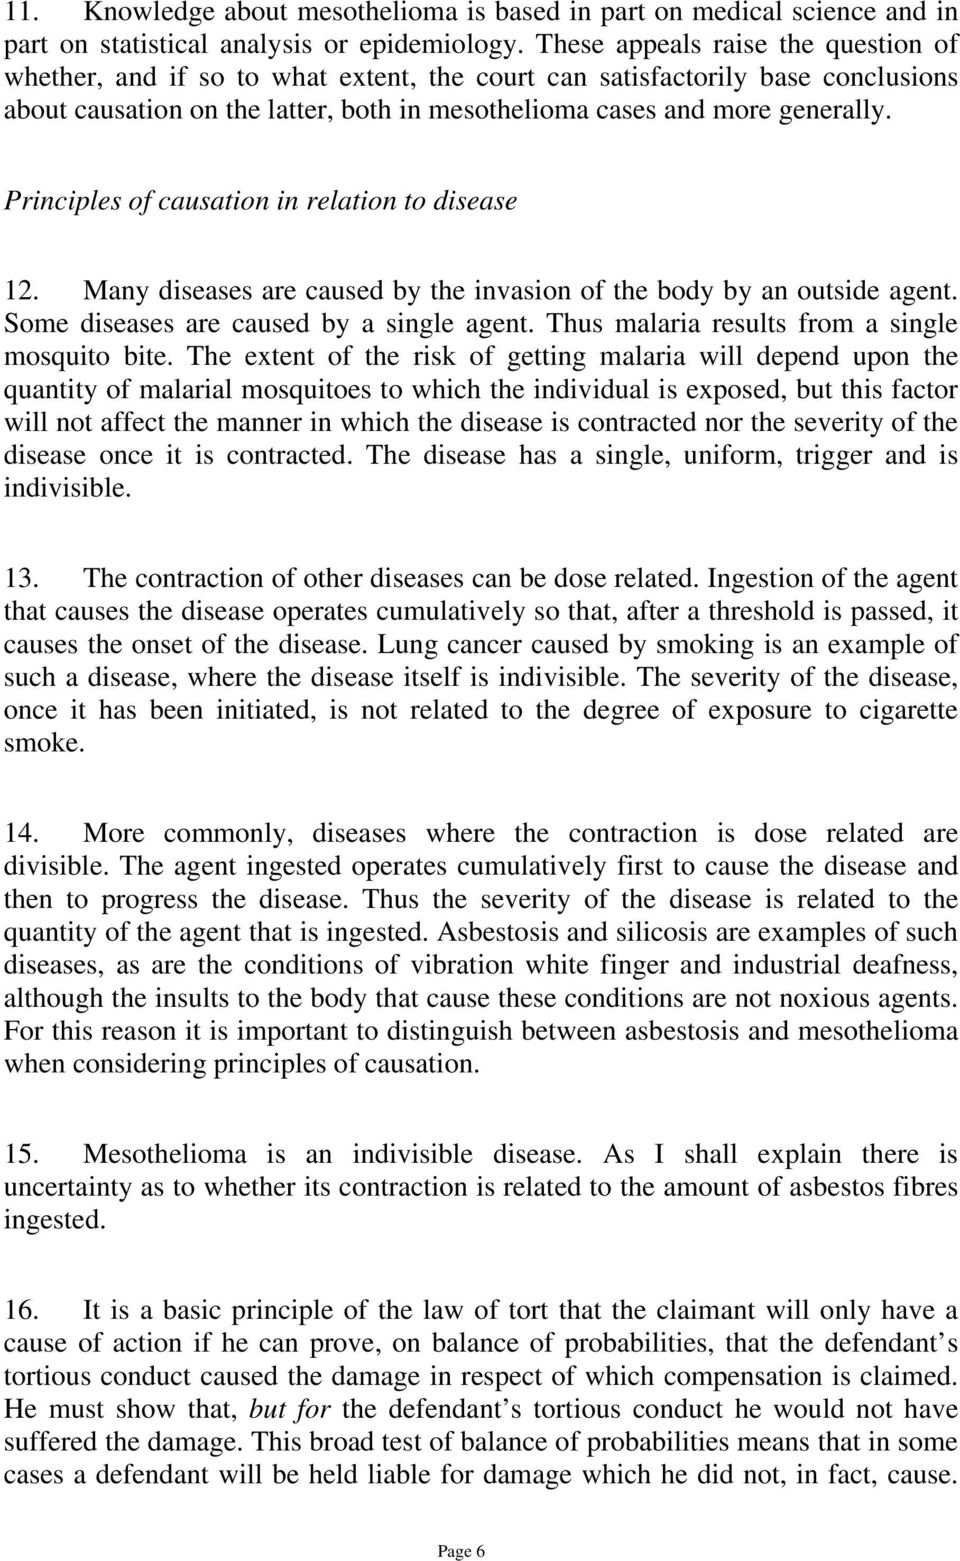 Principles of causation in relation to disease 12. Many diseases are caused by the invasion of the body by an outside agent. Some diseases are caused by a single agent.